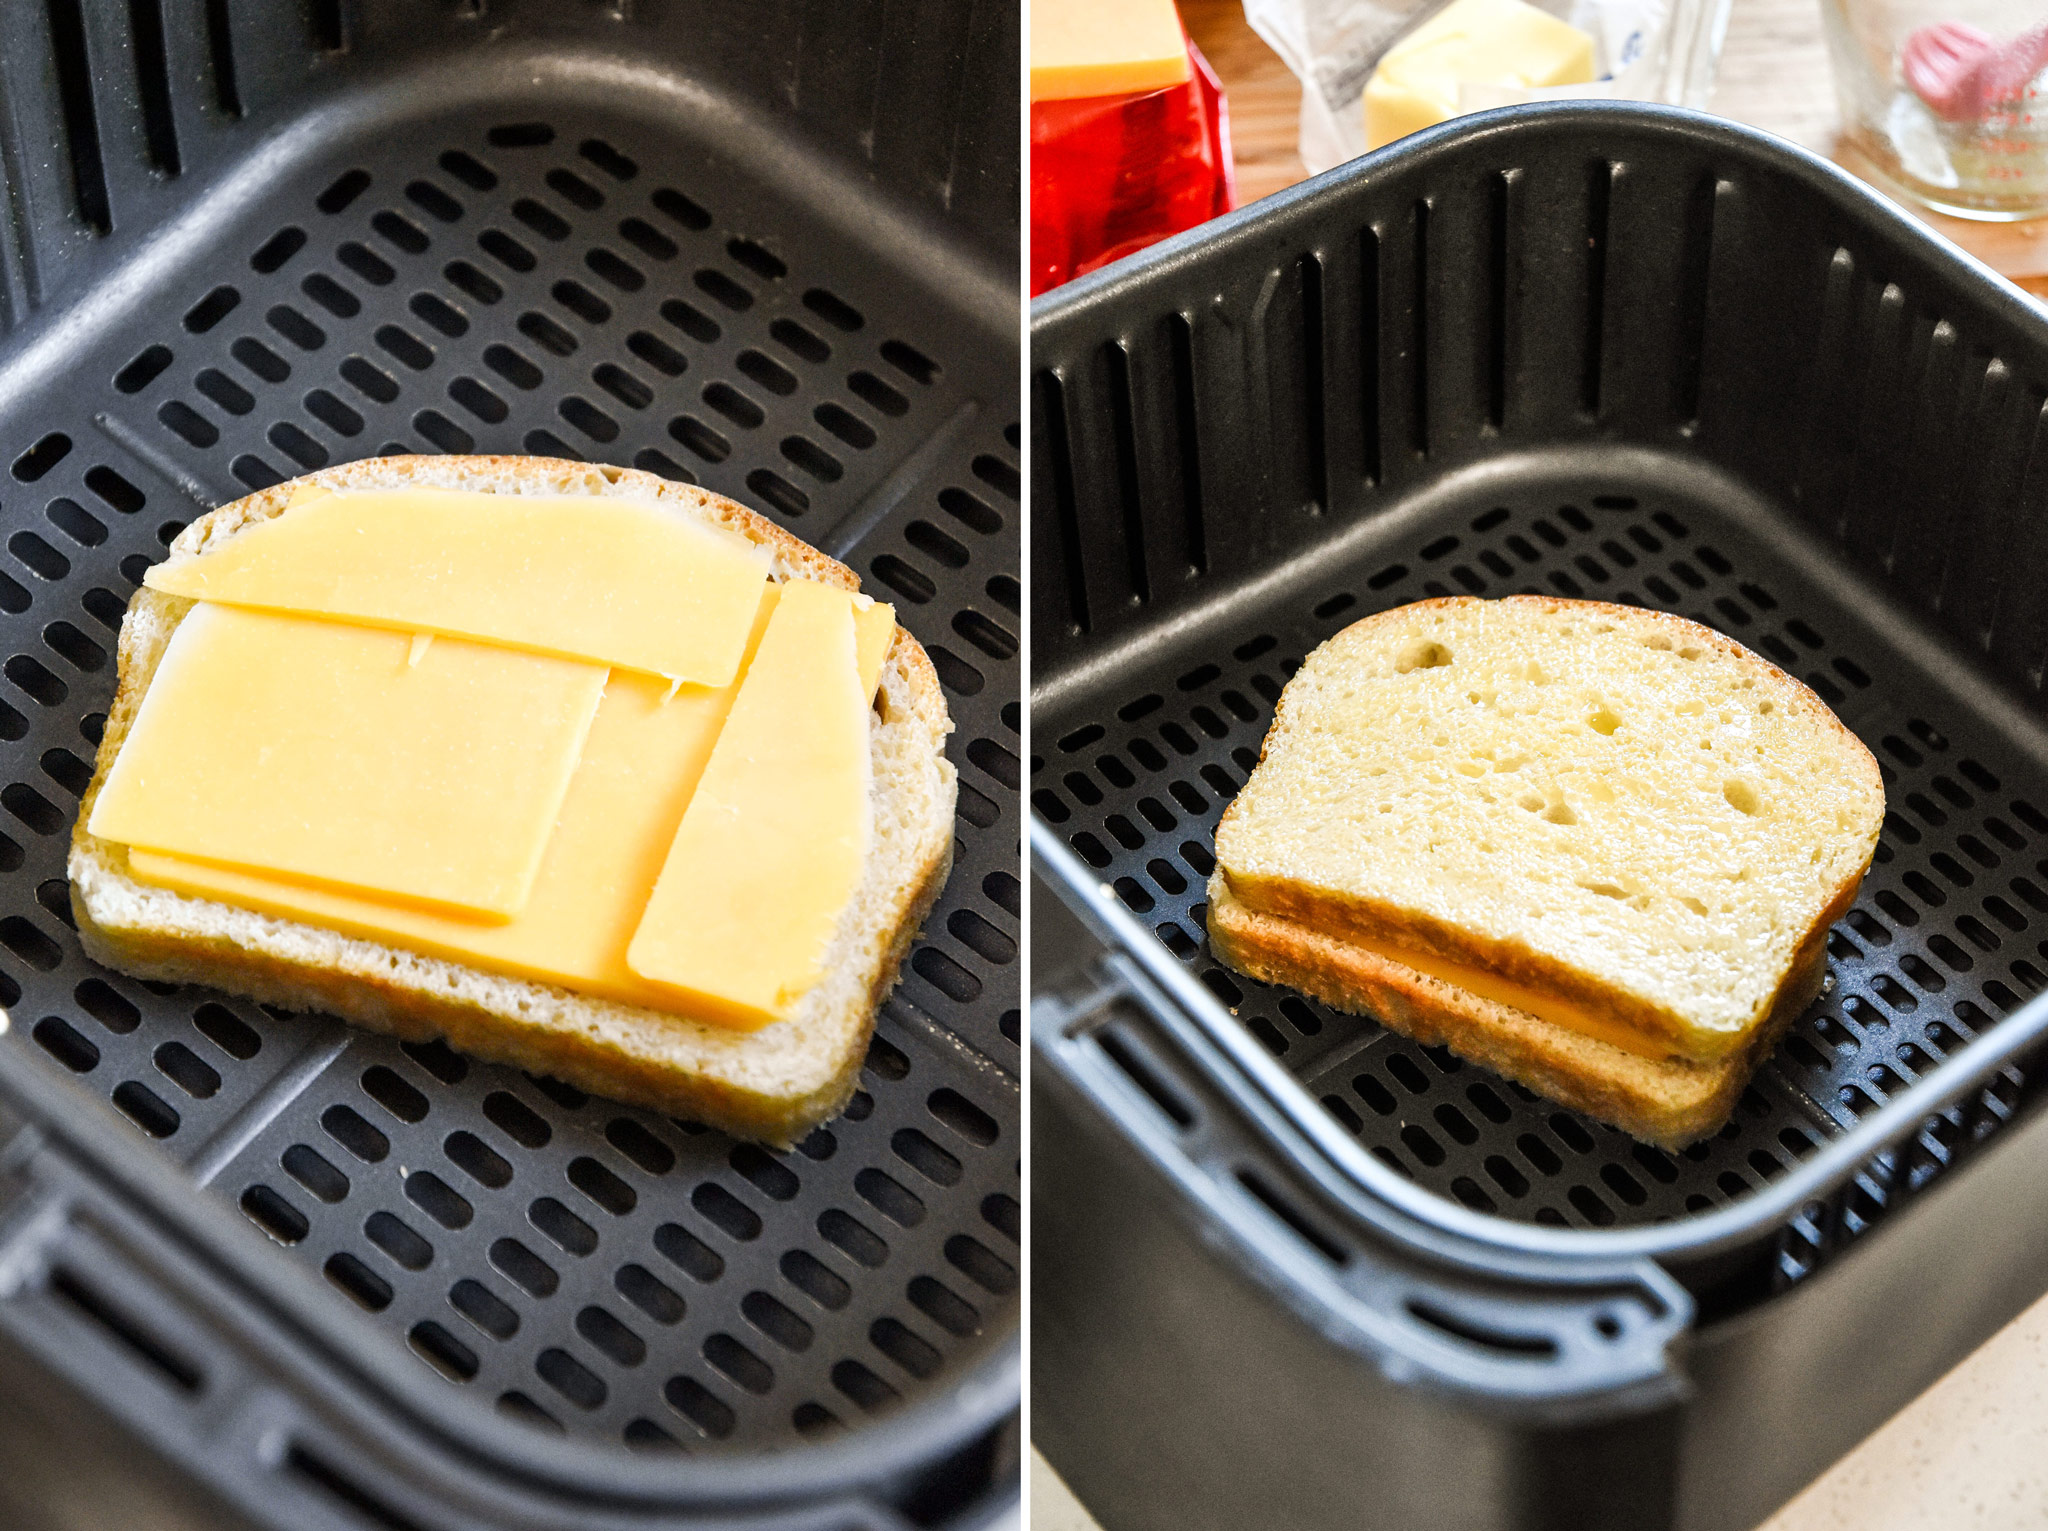 assembling a grilled cheese sandwich in an air fryer